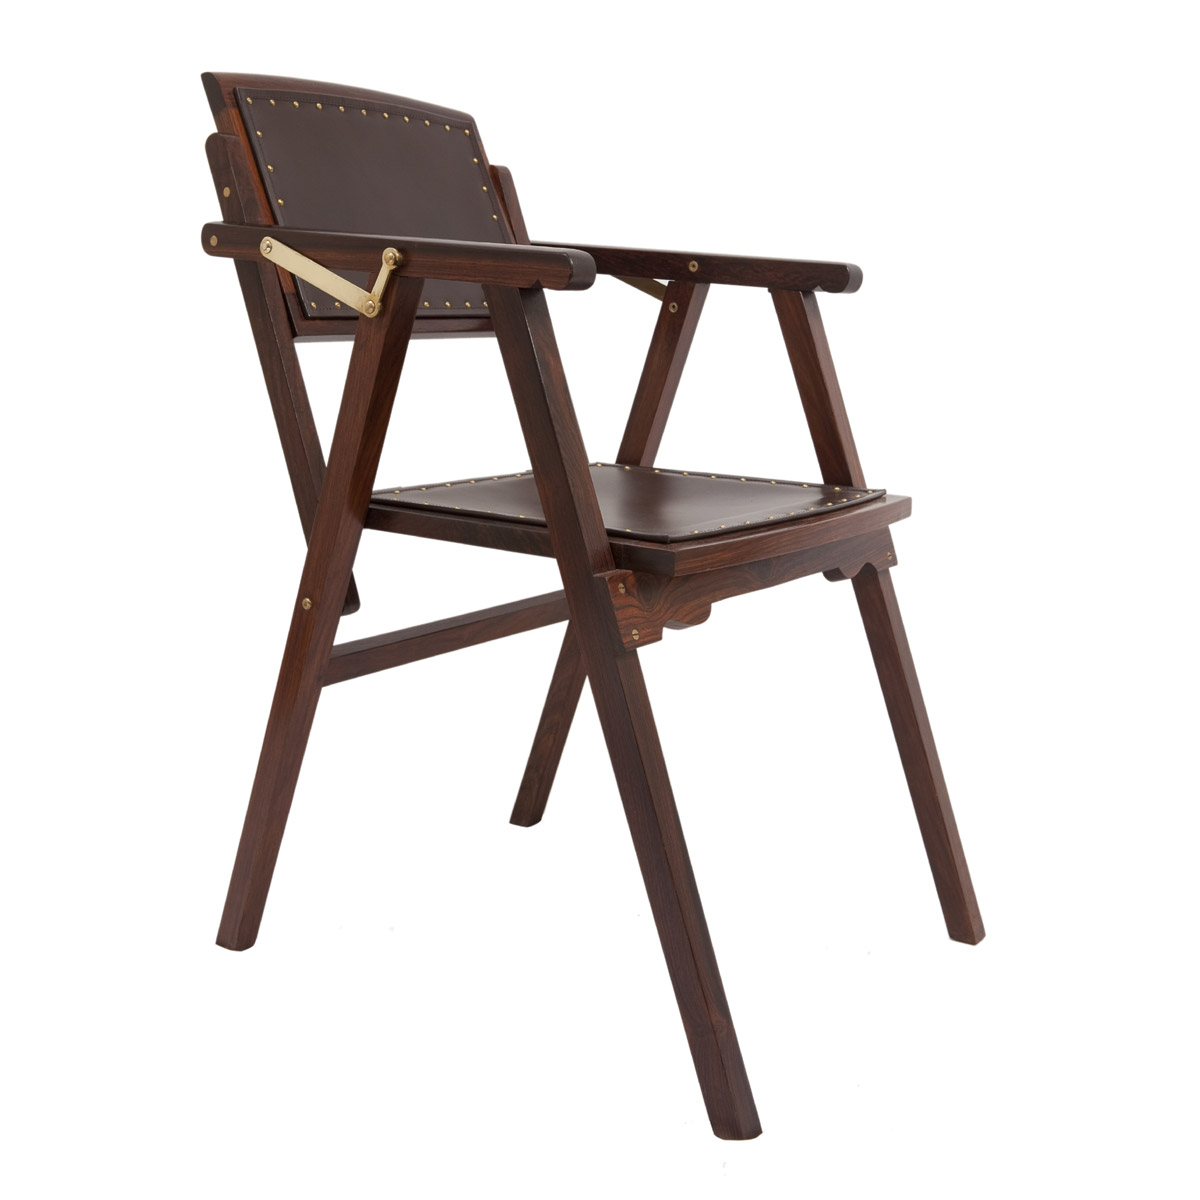 King George Field Chair